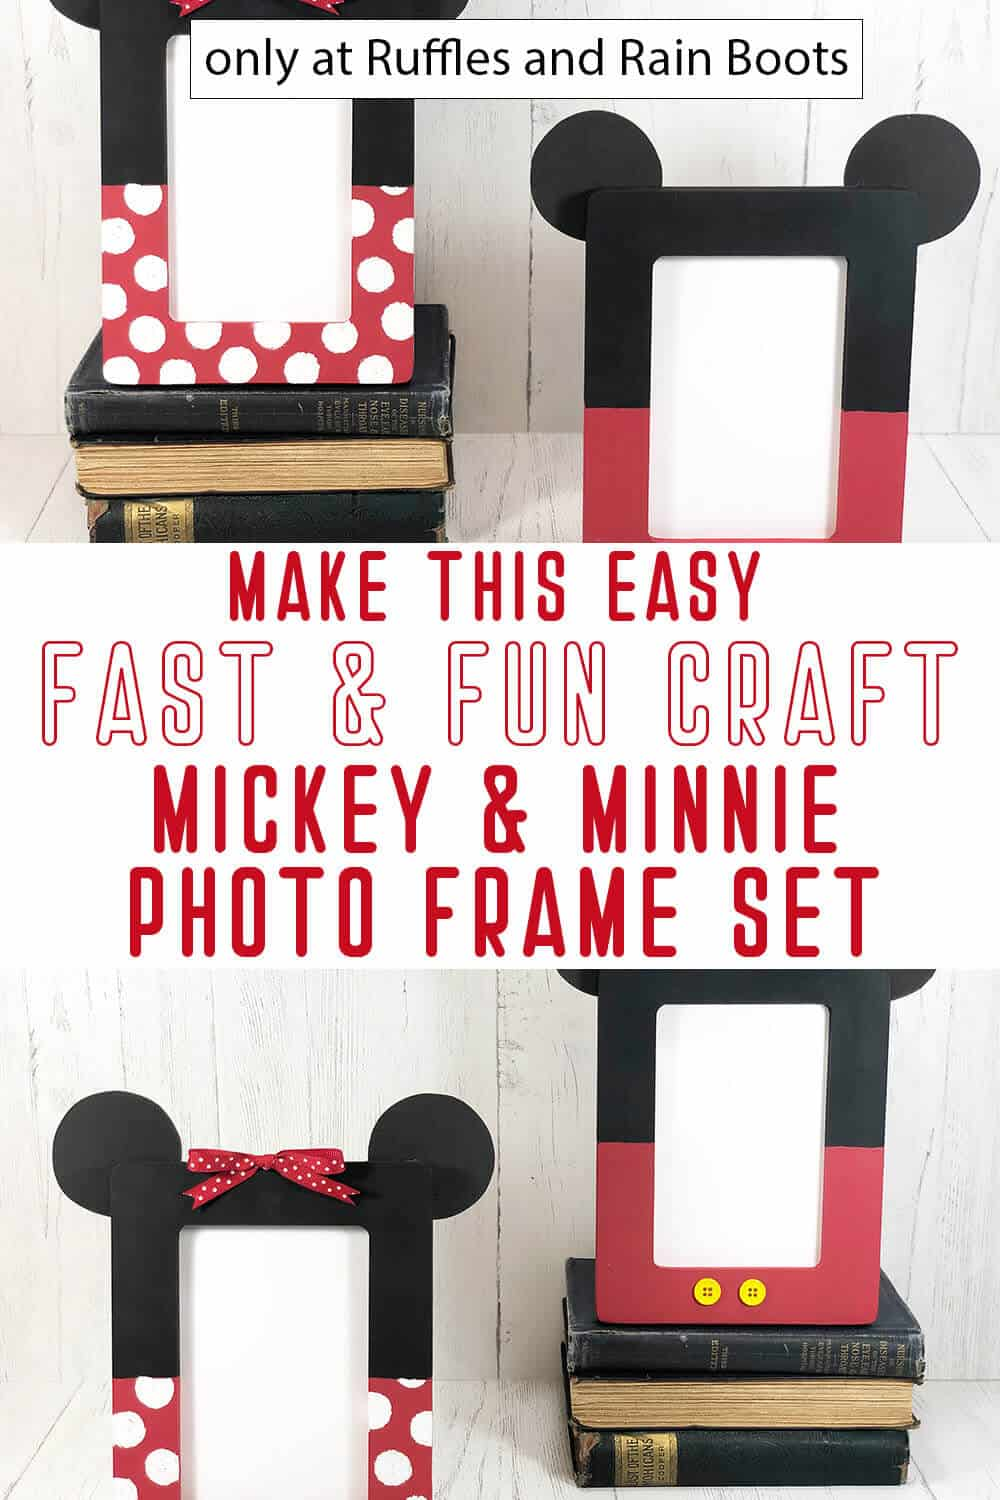 photo collage of Mickey and Minnie Photo Frames with text which reads make this easy fast & fun craft mickey & minnie photo frame set